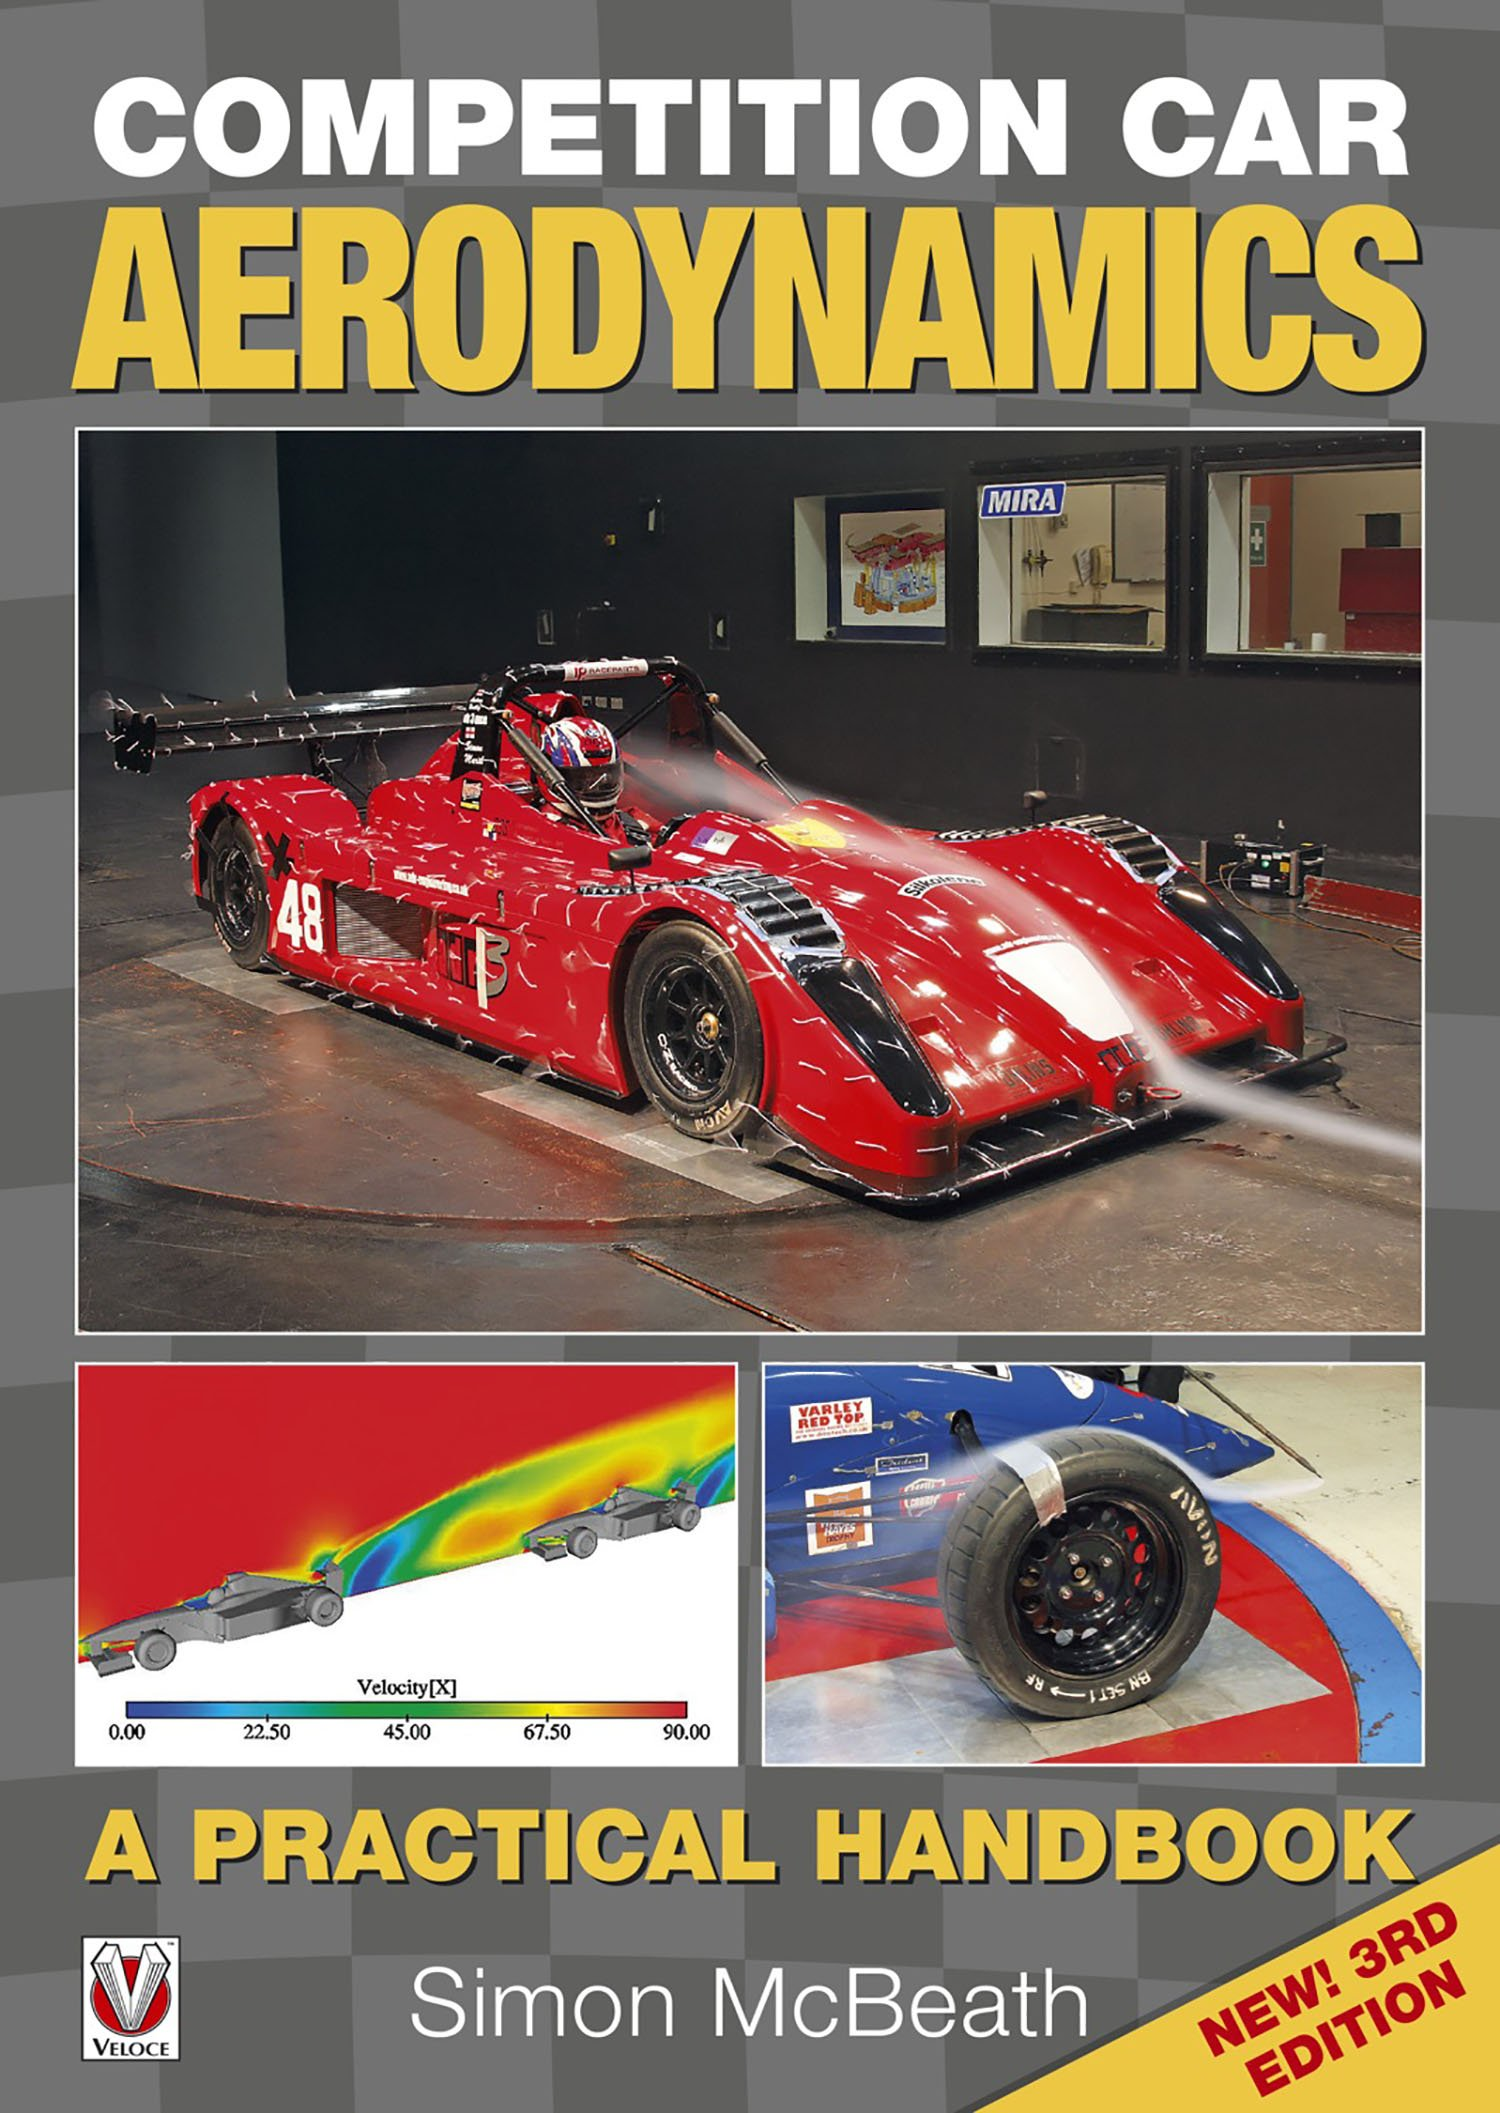 Download Competition Car Aerodynamics 3rd Edition (English Edition) 